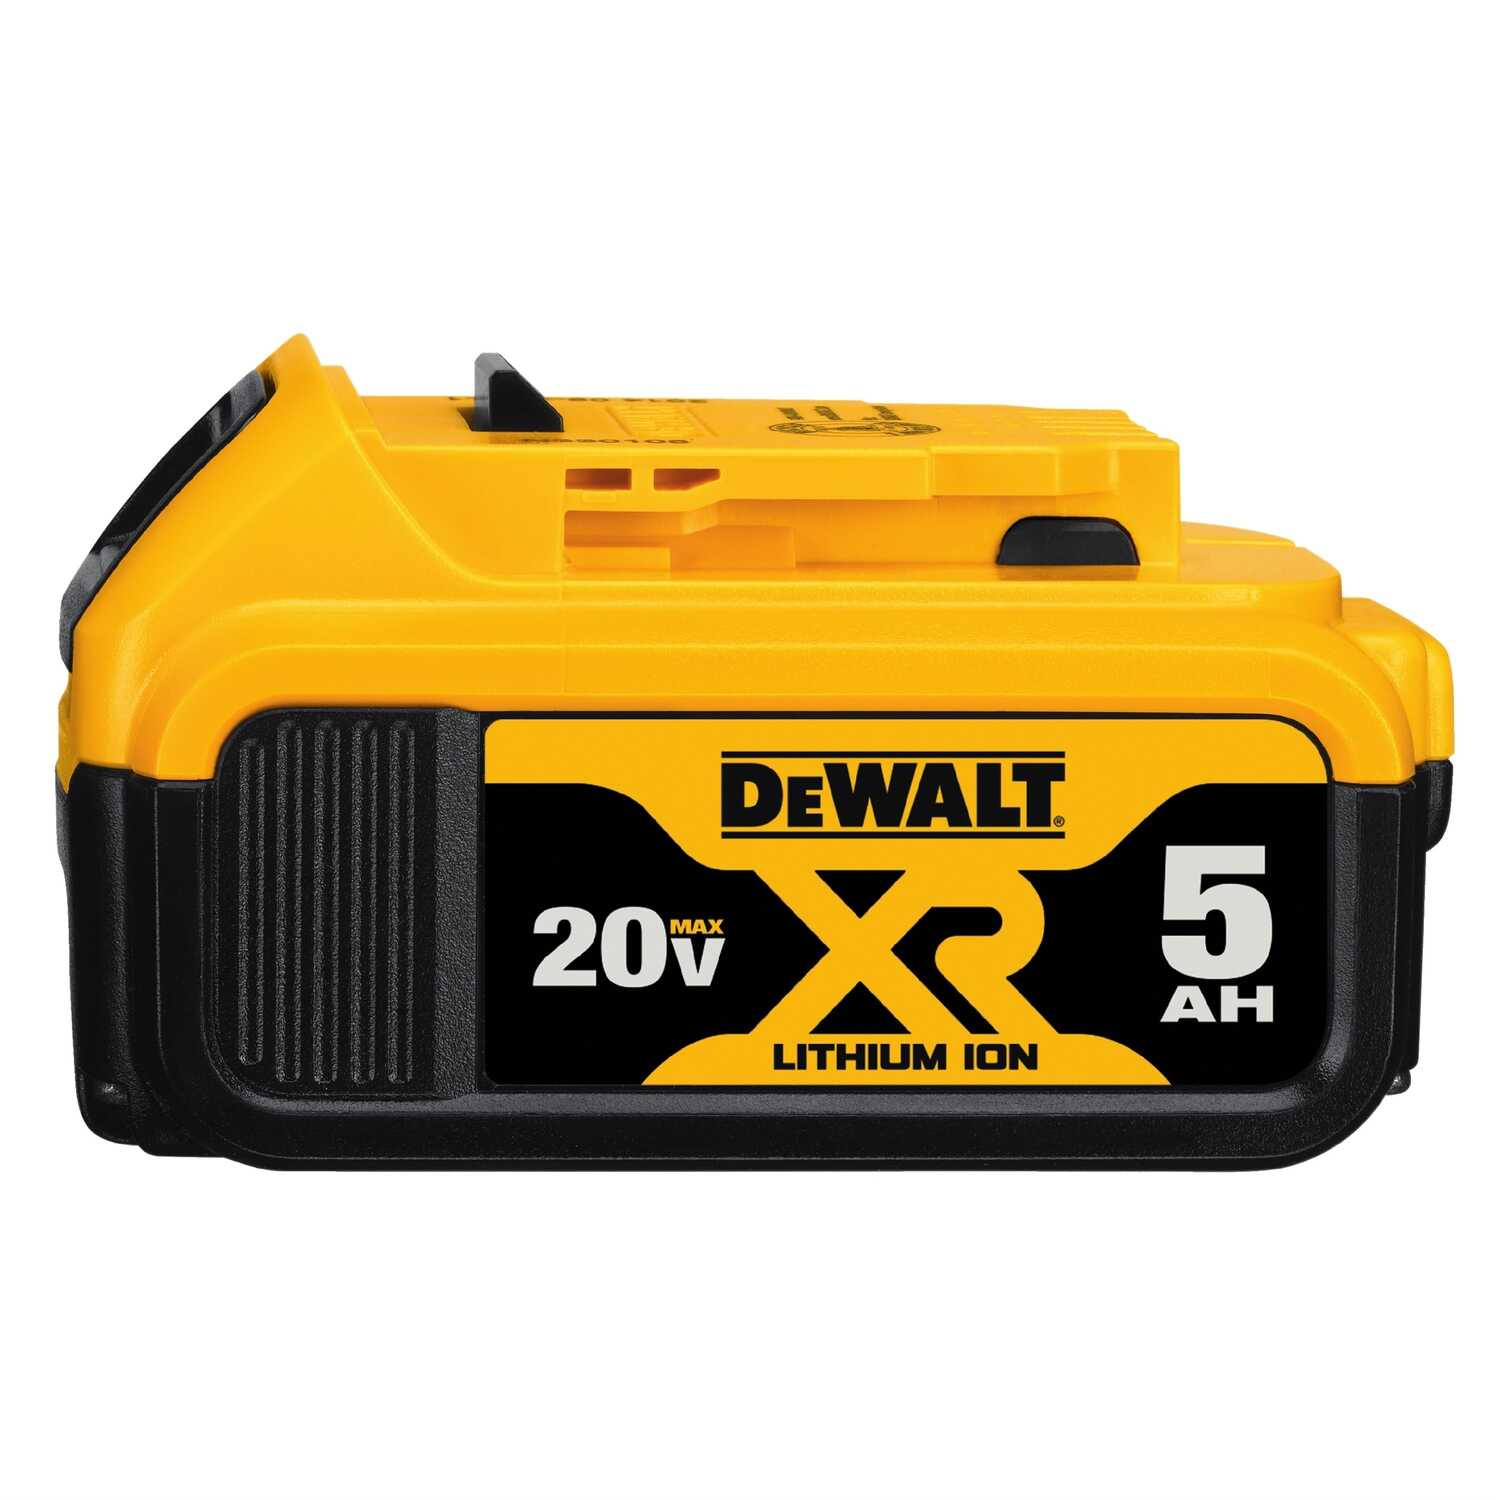 DeWalt 20V MAX XR 20 Volt 5 Ah Lithium-Ion Battery 1 Pc